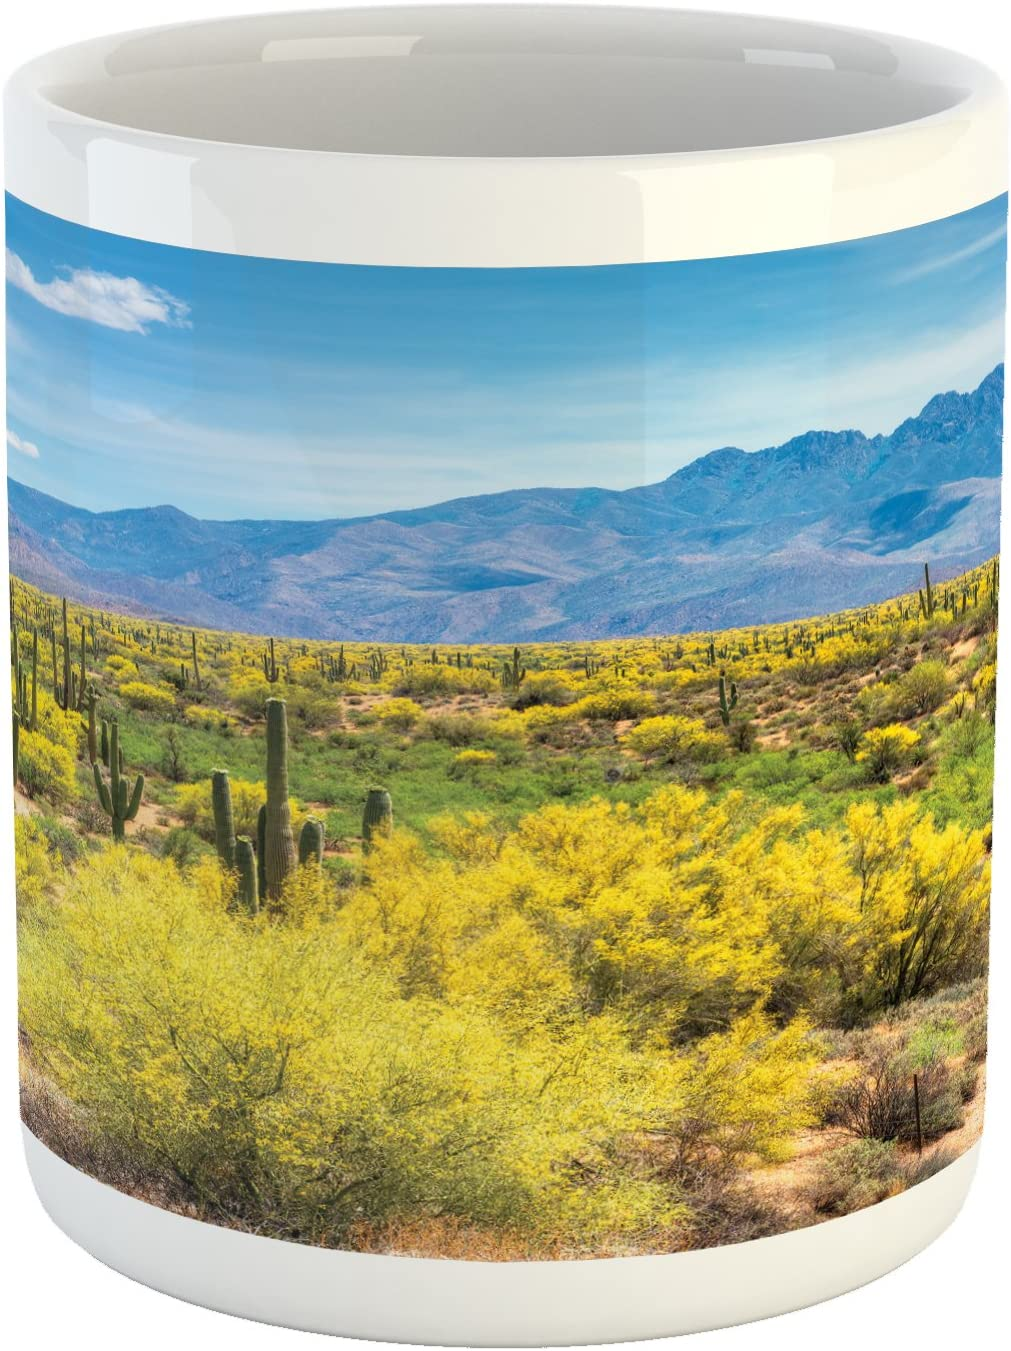 Lunarable Saguaro Mug, Blooming Palo Verdes and Saguaros at 4 Peaks Hills Phoenix Arizona, Ceramic Coffee Mug Cup for Water Tea Drinks, 11 oz, Apple Green